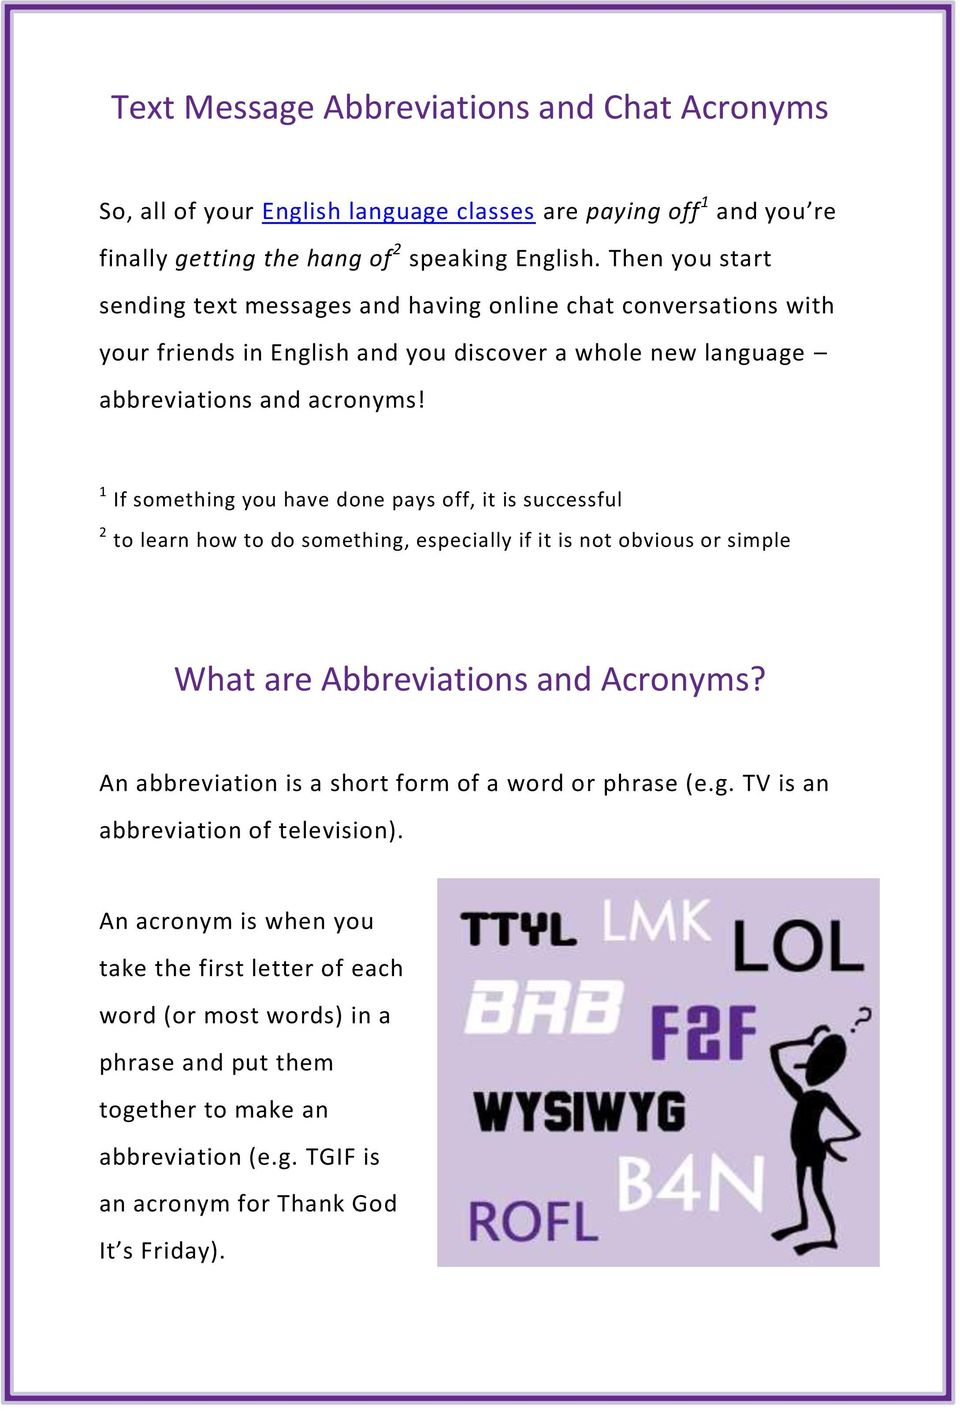 Sexting acronyms and abbreviations